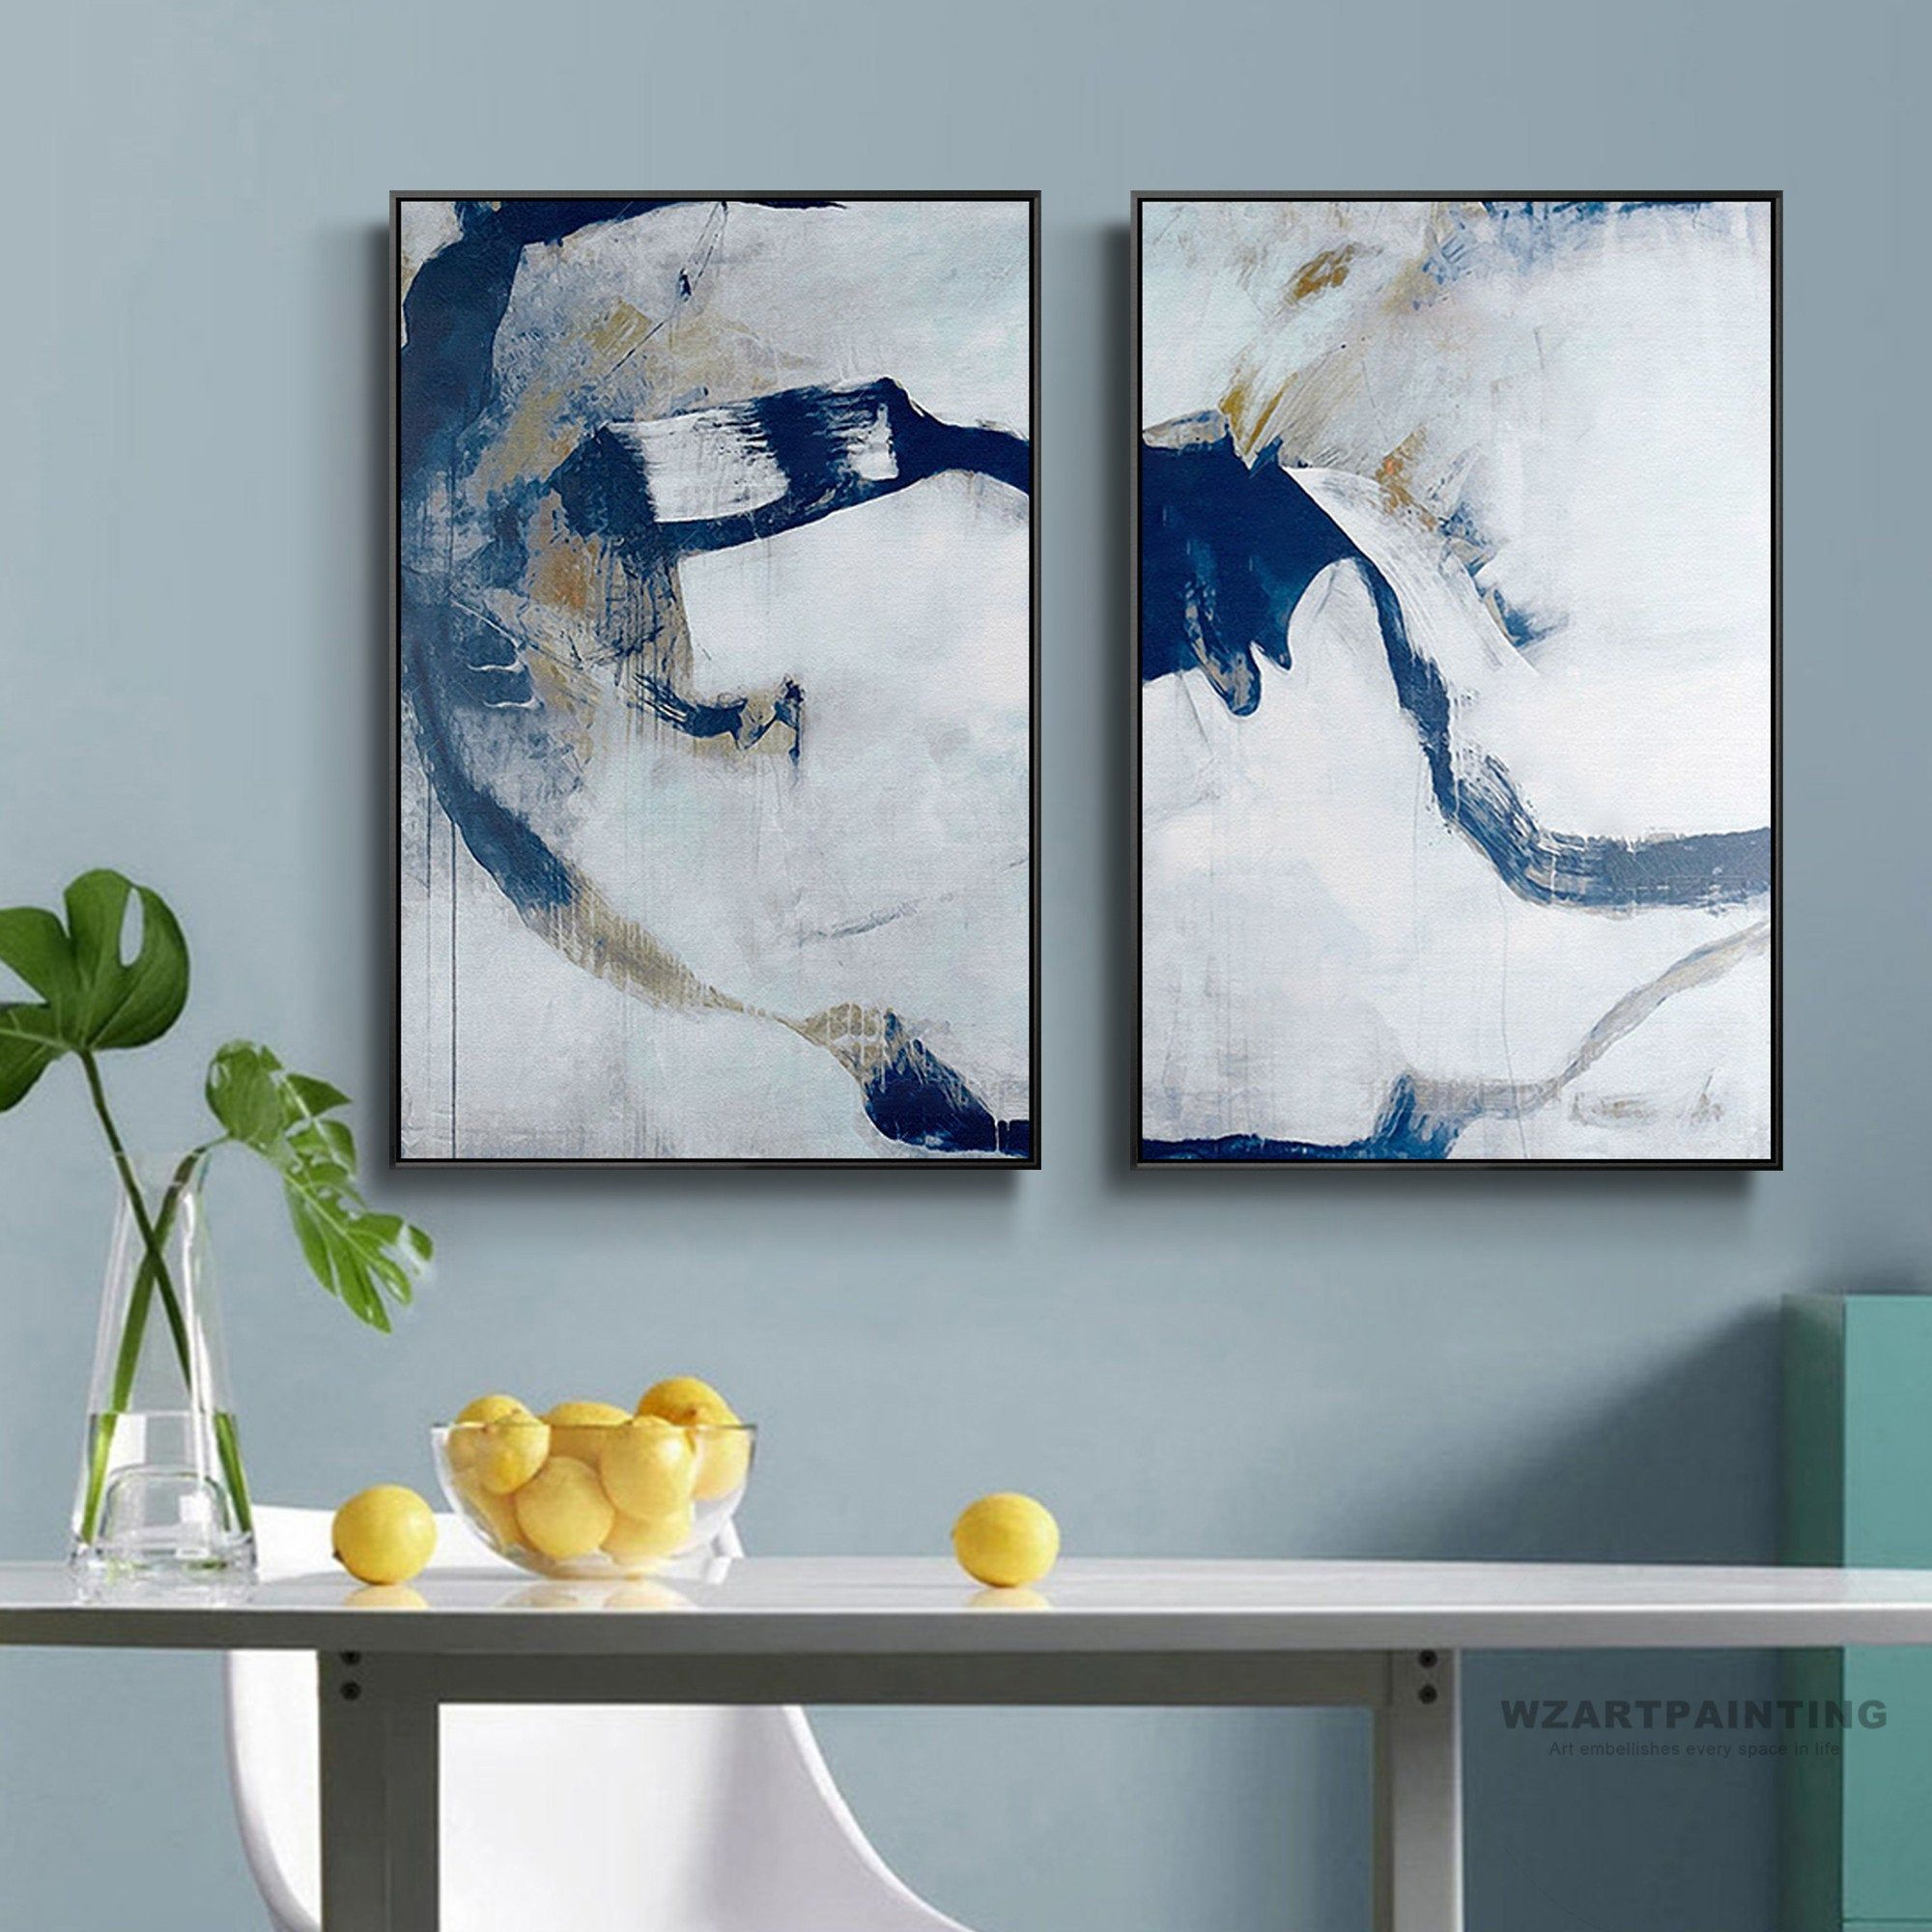 Framed Wall Art Set Of 2 Prints Abstract Navy Blue White Print Painting Wall Art Pictures On Canvas La Wall Art Painting Wall Art Pictures Framed Wall Art Sets